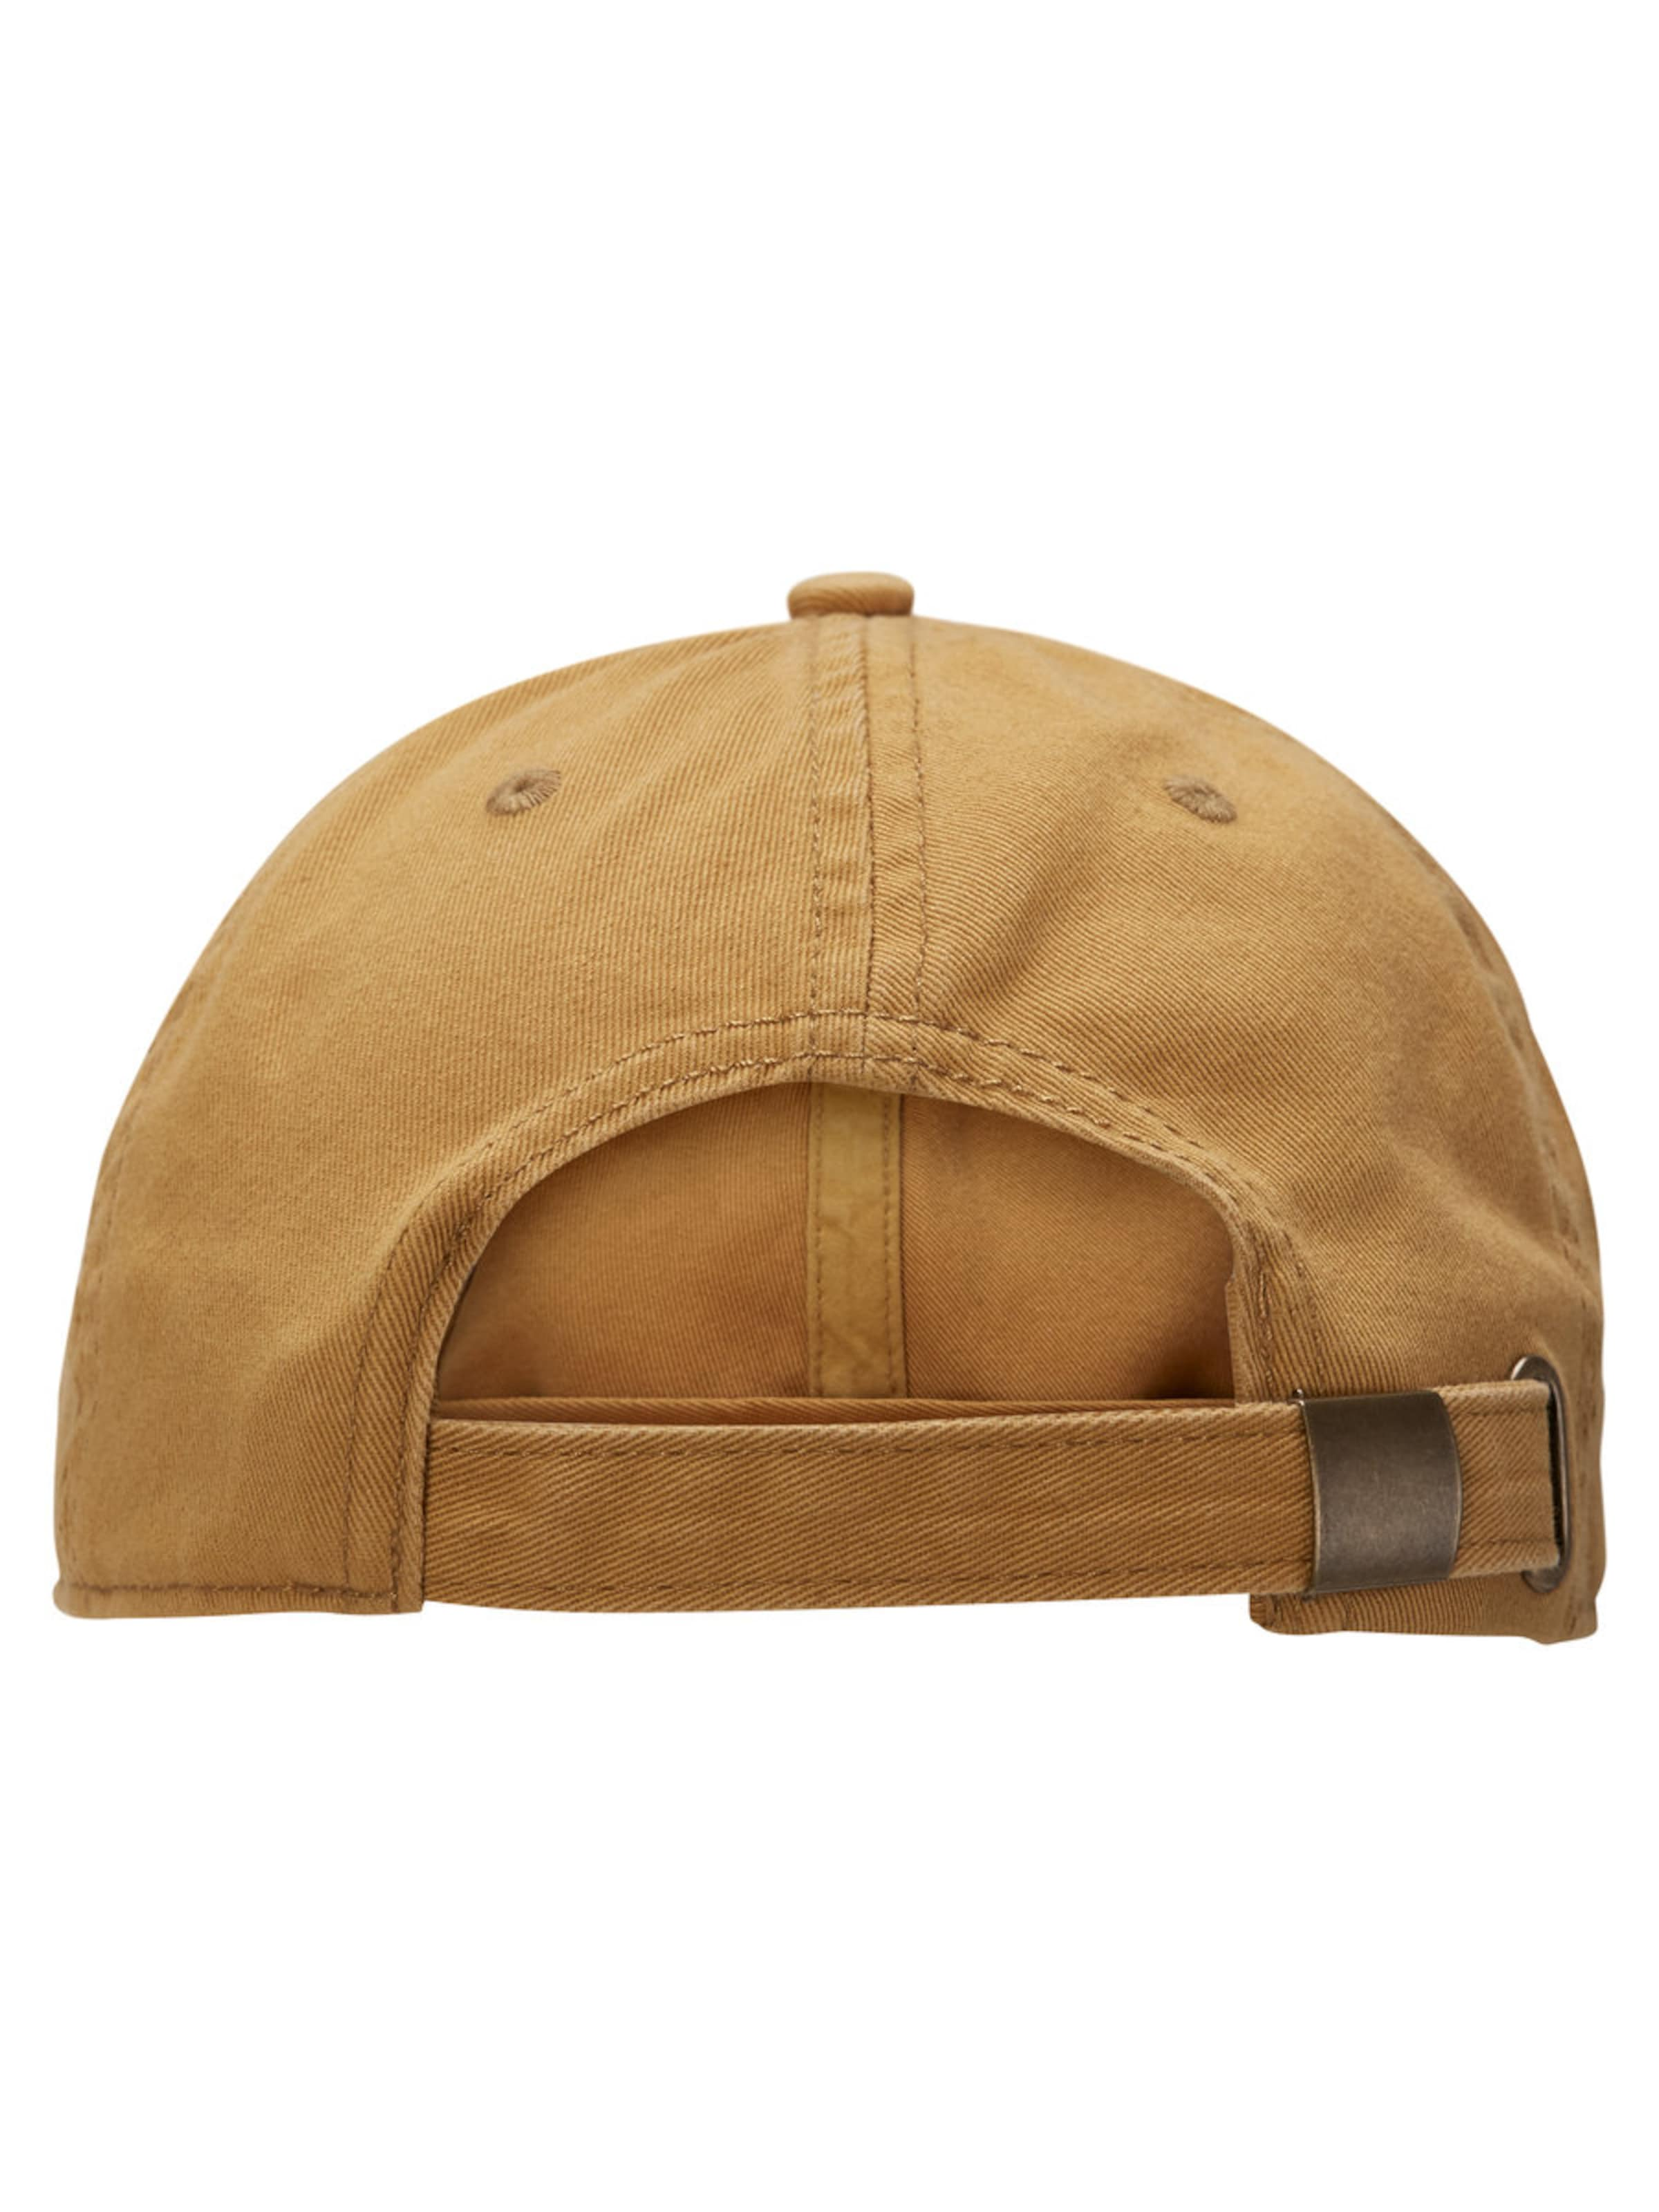 JACK & JONES Statement Cap Wie Viel cKrm7w1